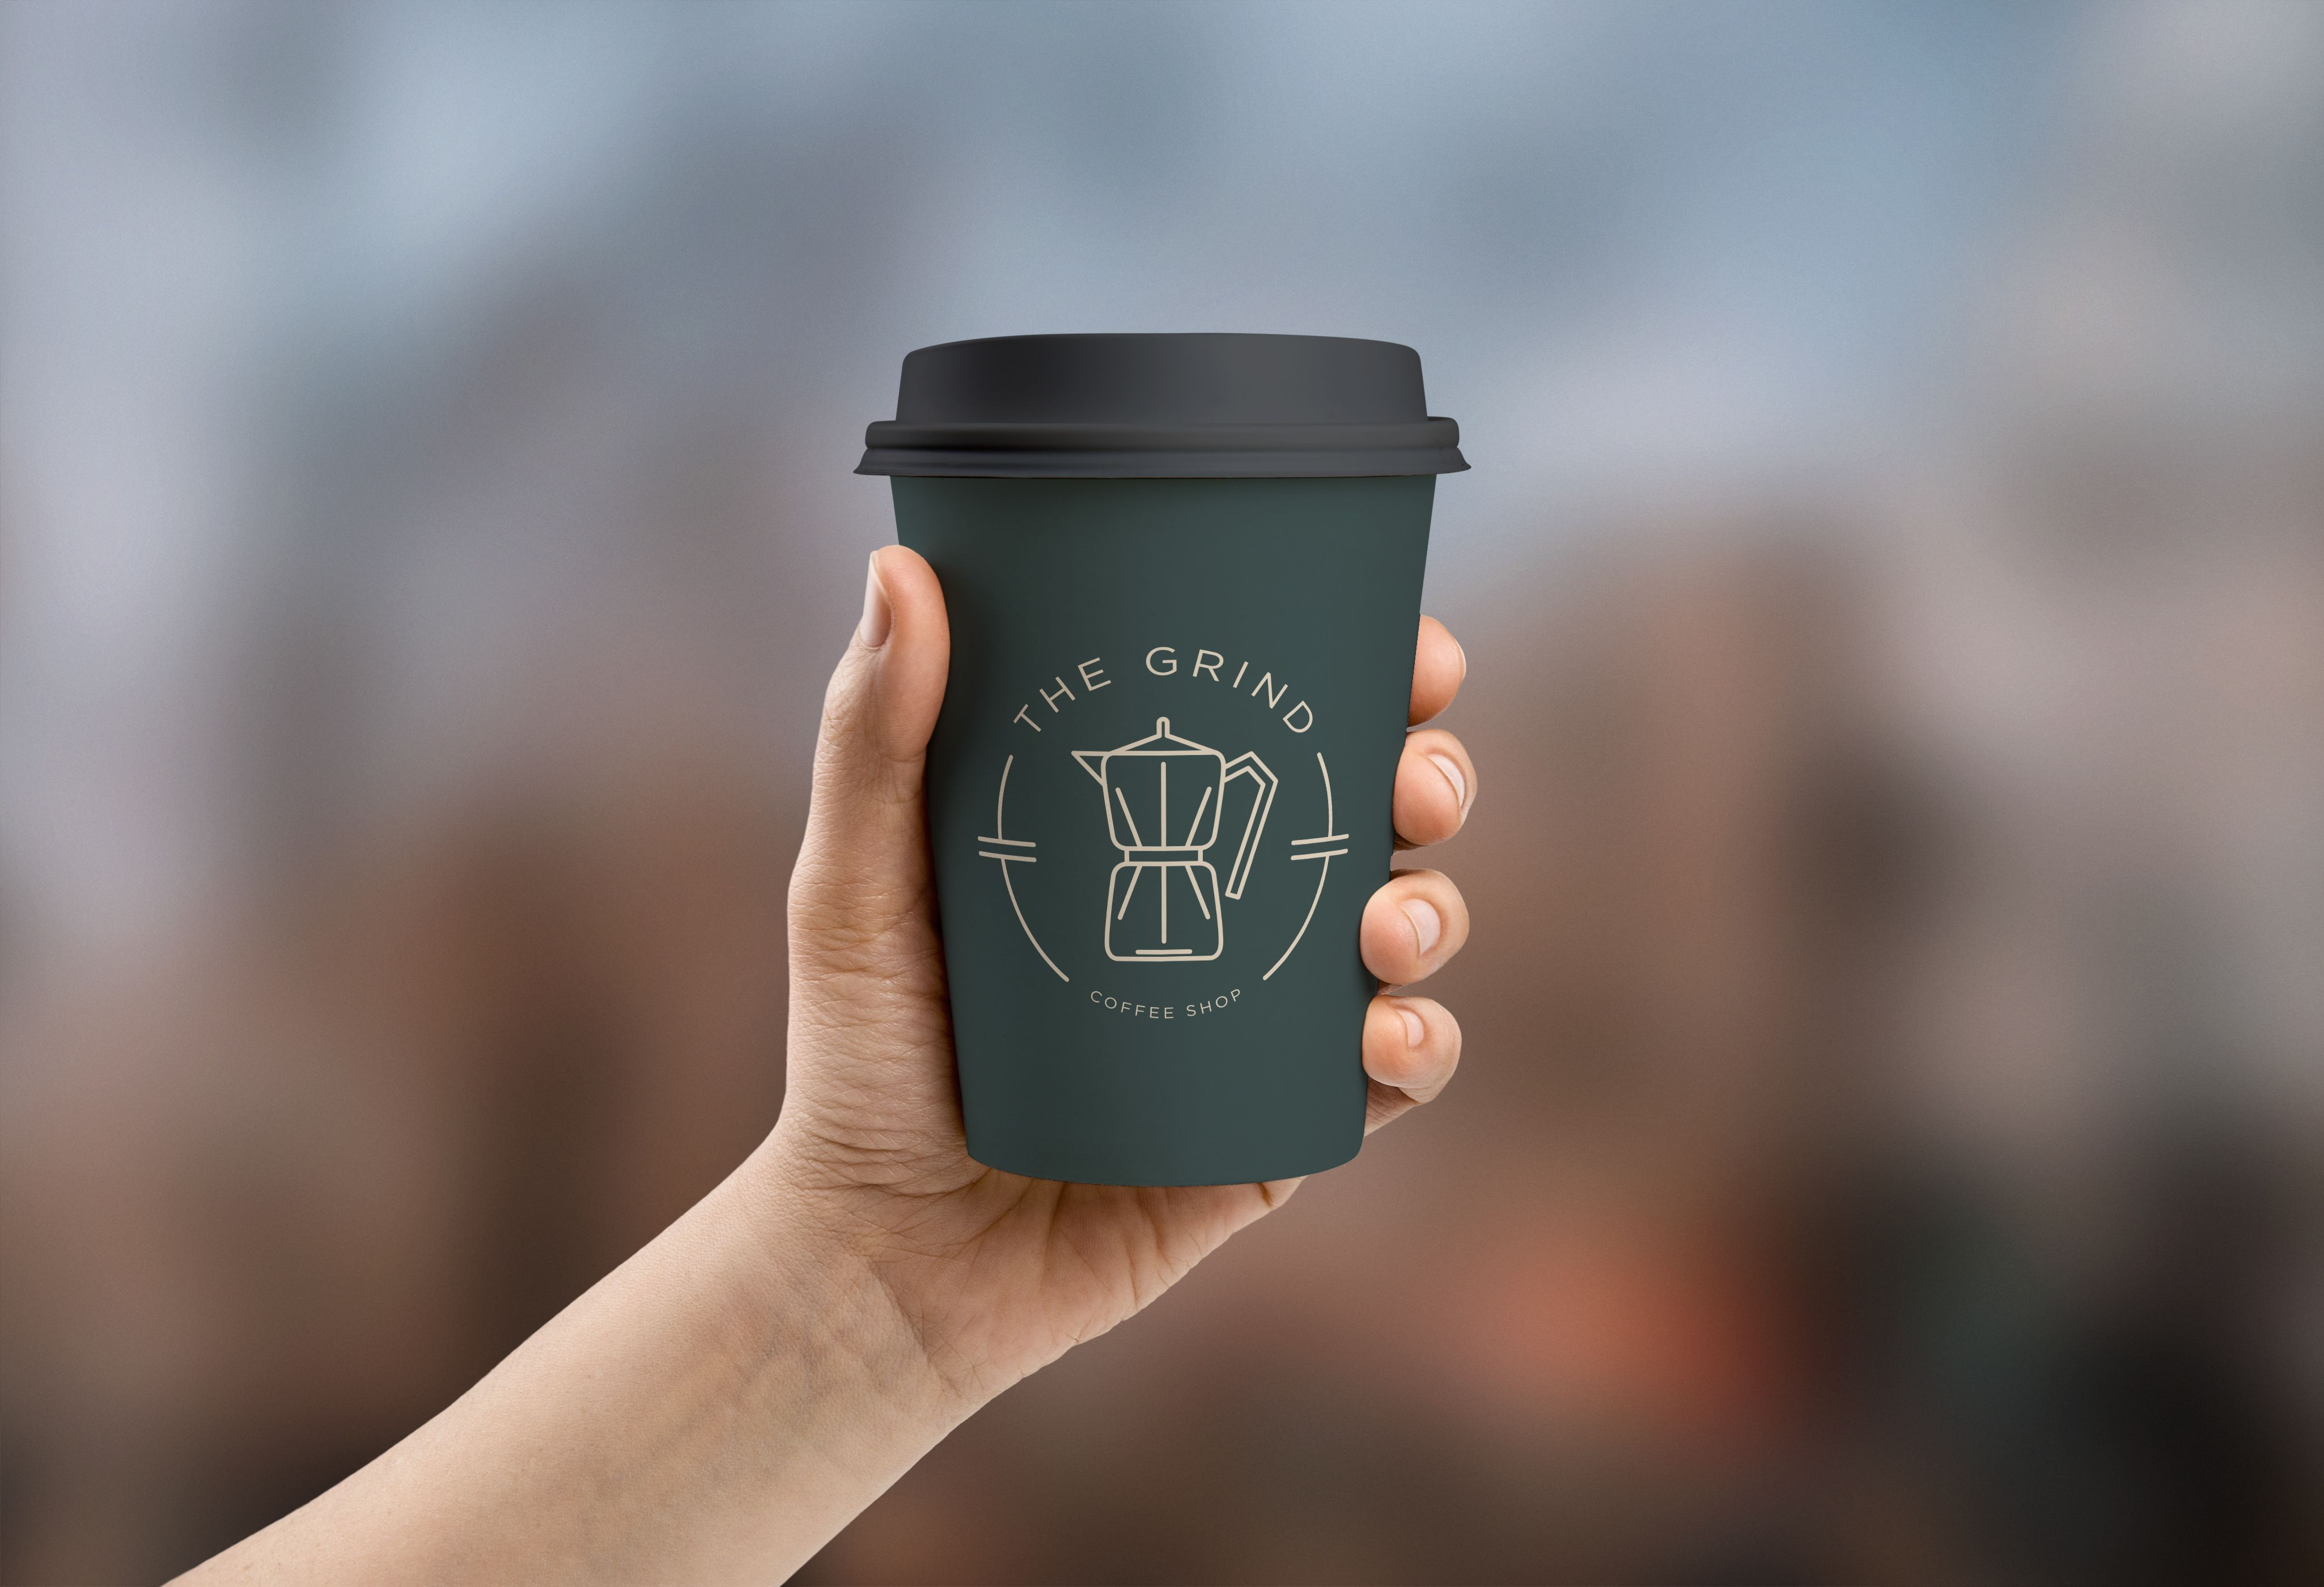 Check out this behance project the grind coffee shop